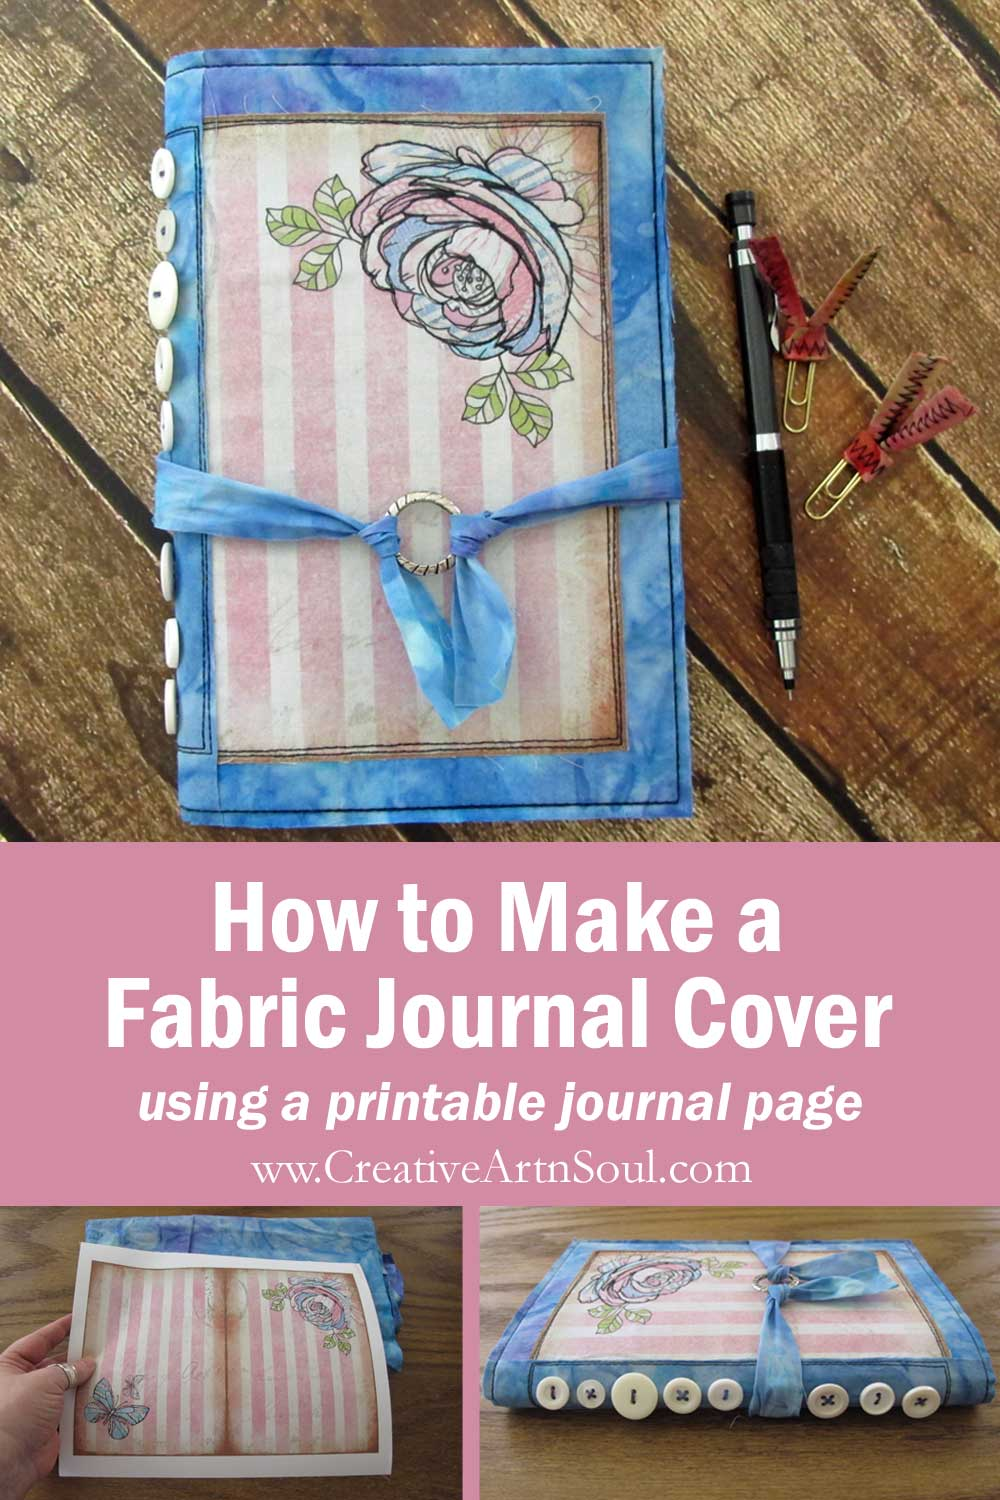 How to Make a Reusable Fabric Journal Cover